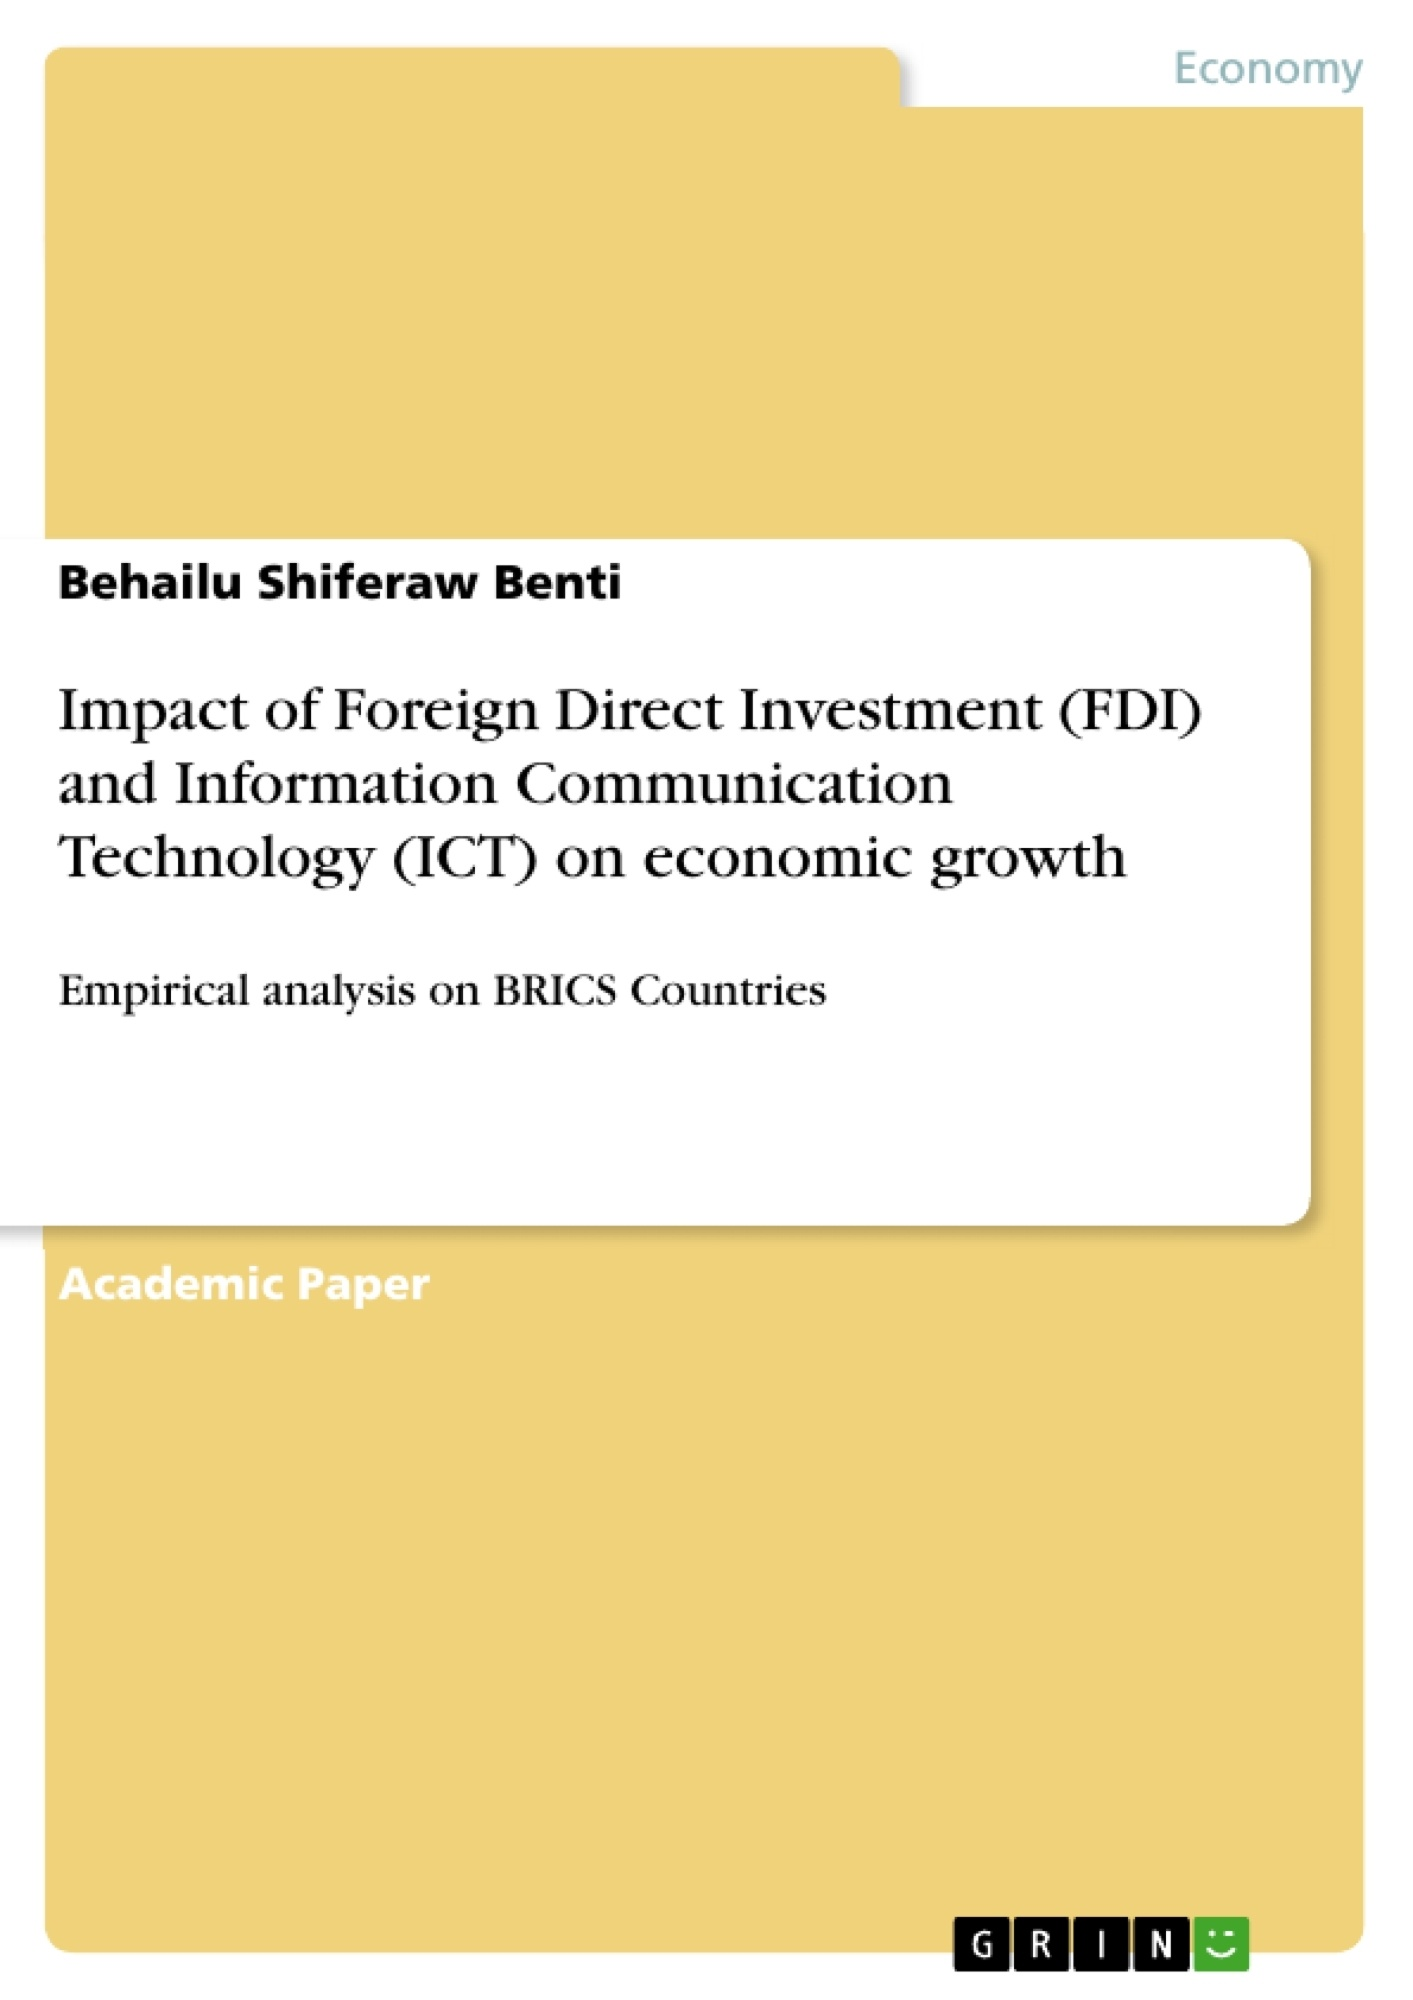 Title: Impact of Foreign Direct Investment (FDI) and Information Communication Technology (ICT) on economic growth